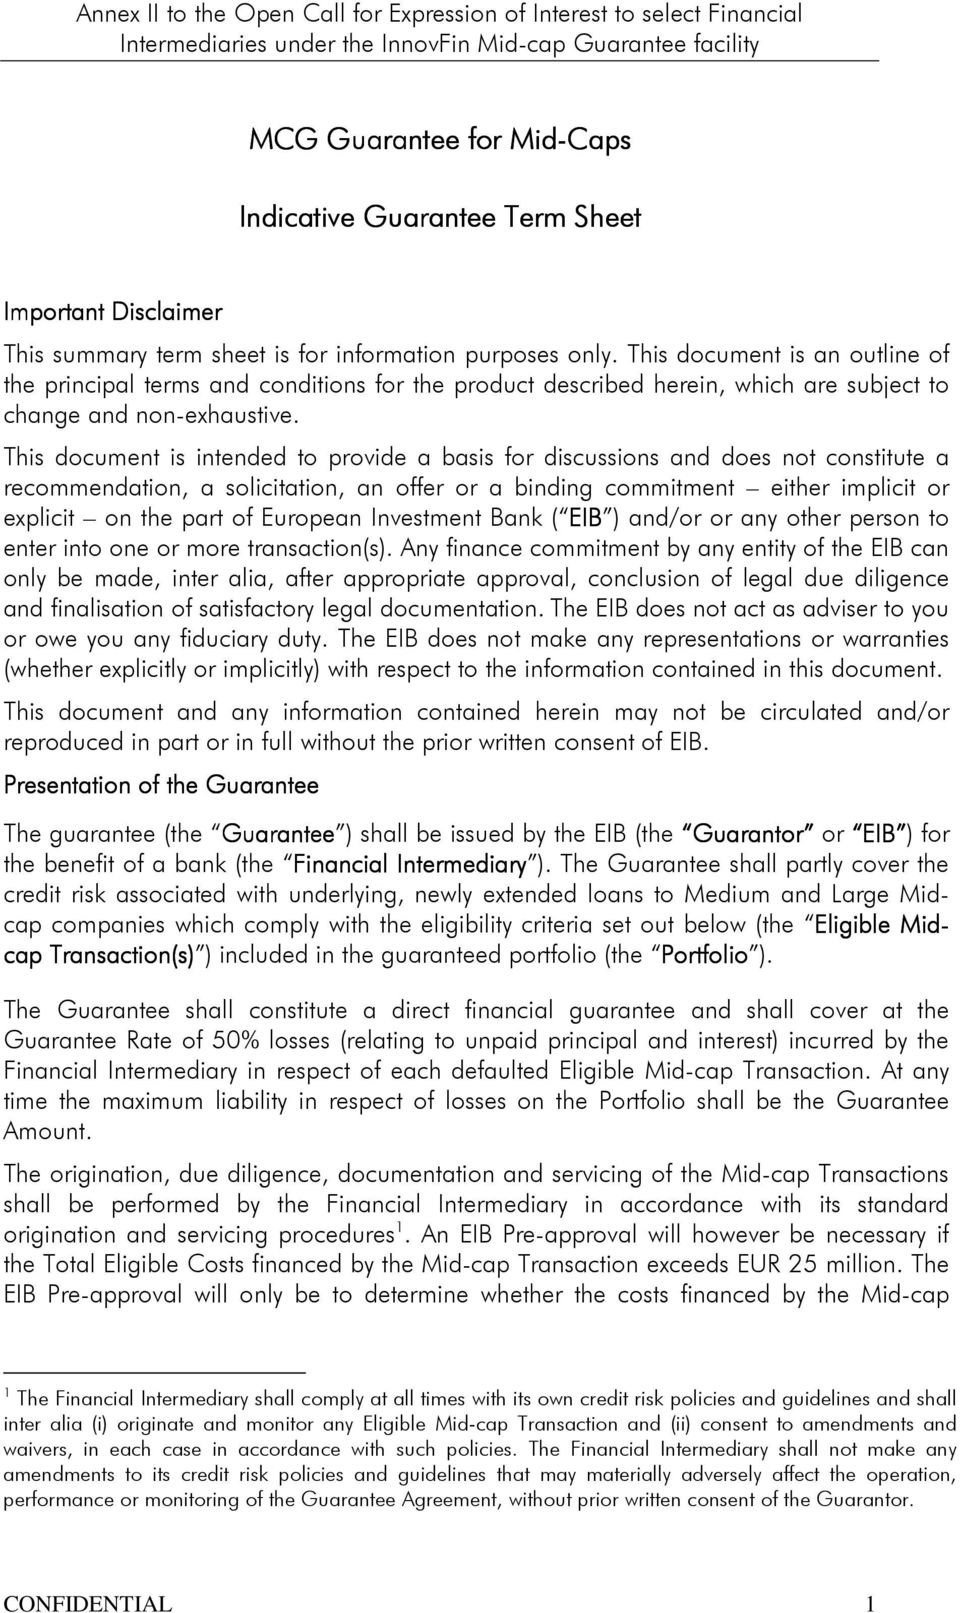 This document is an outline of the principal terms and conditions for the product described herein, which are subject to change and non-exhaustive.